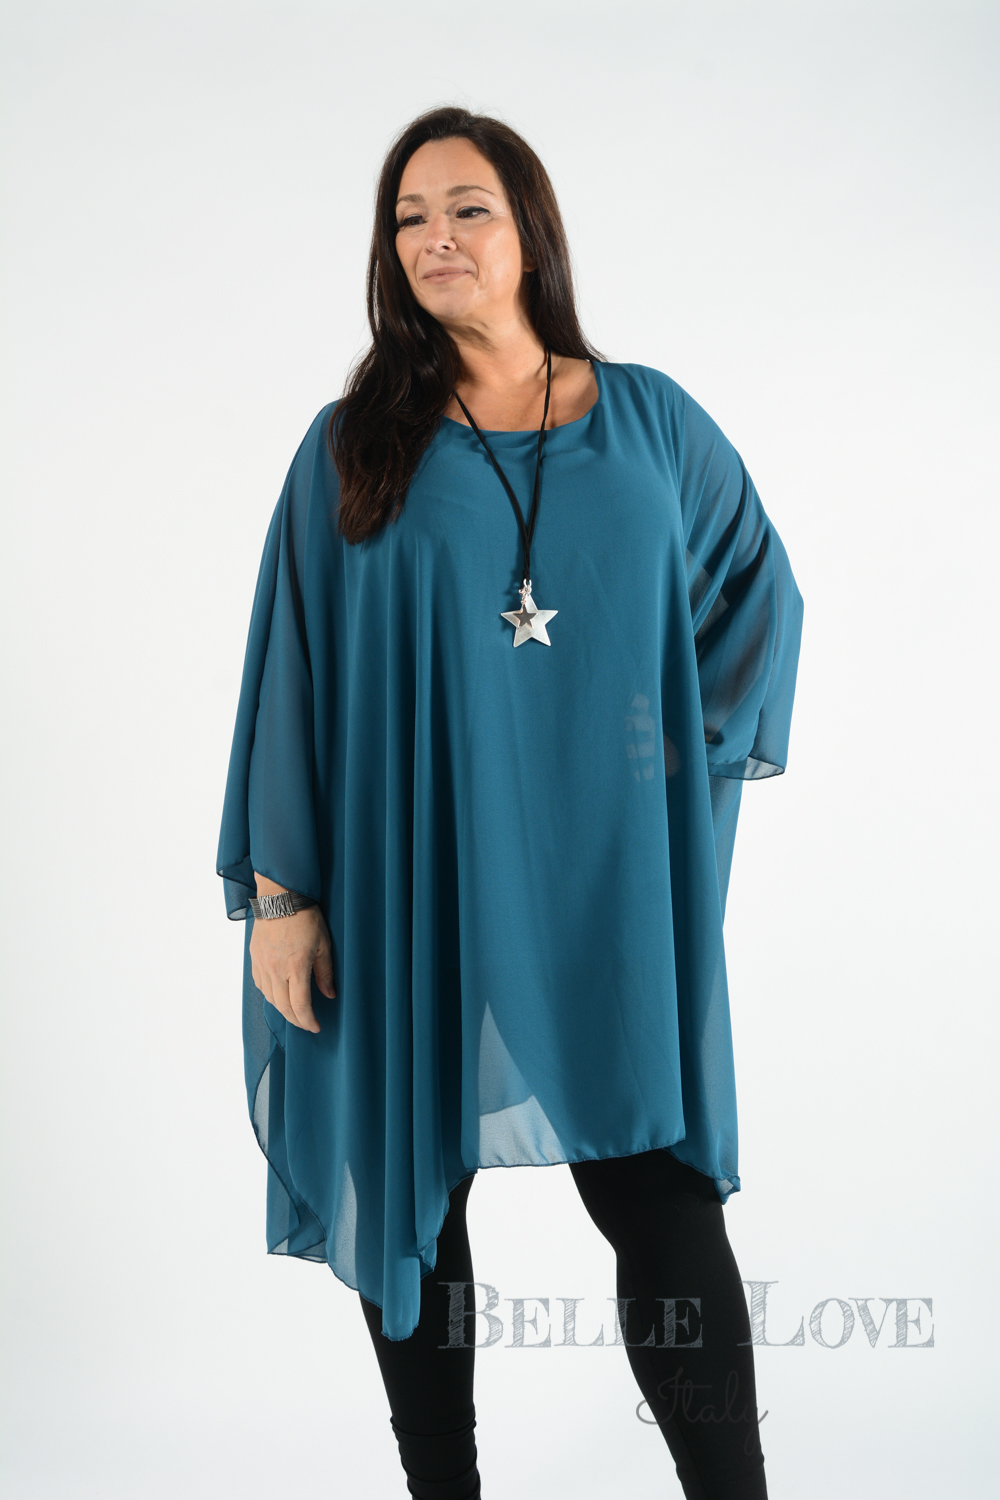 Belle Love Italy Ivy Tunic